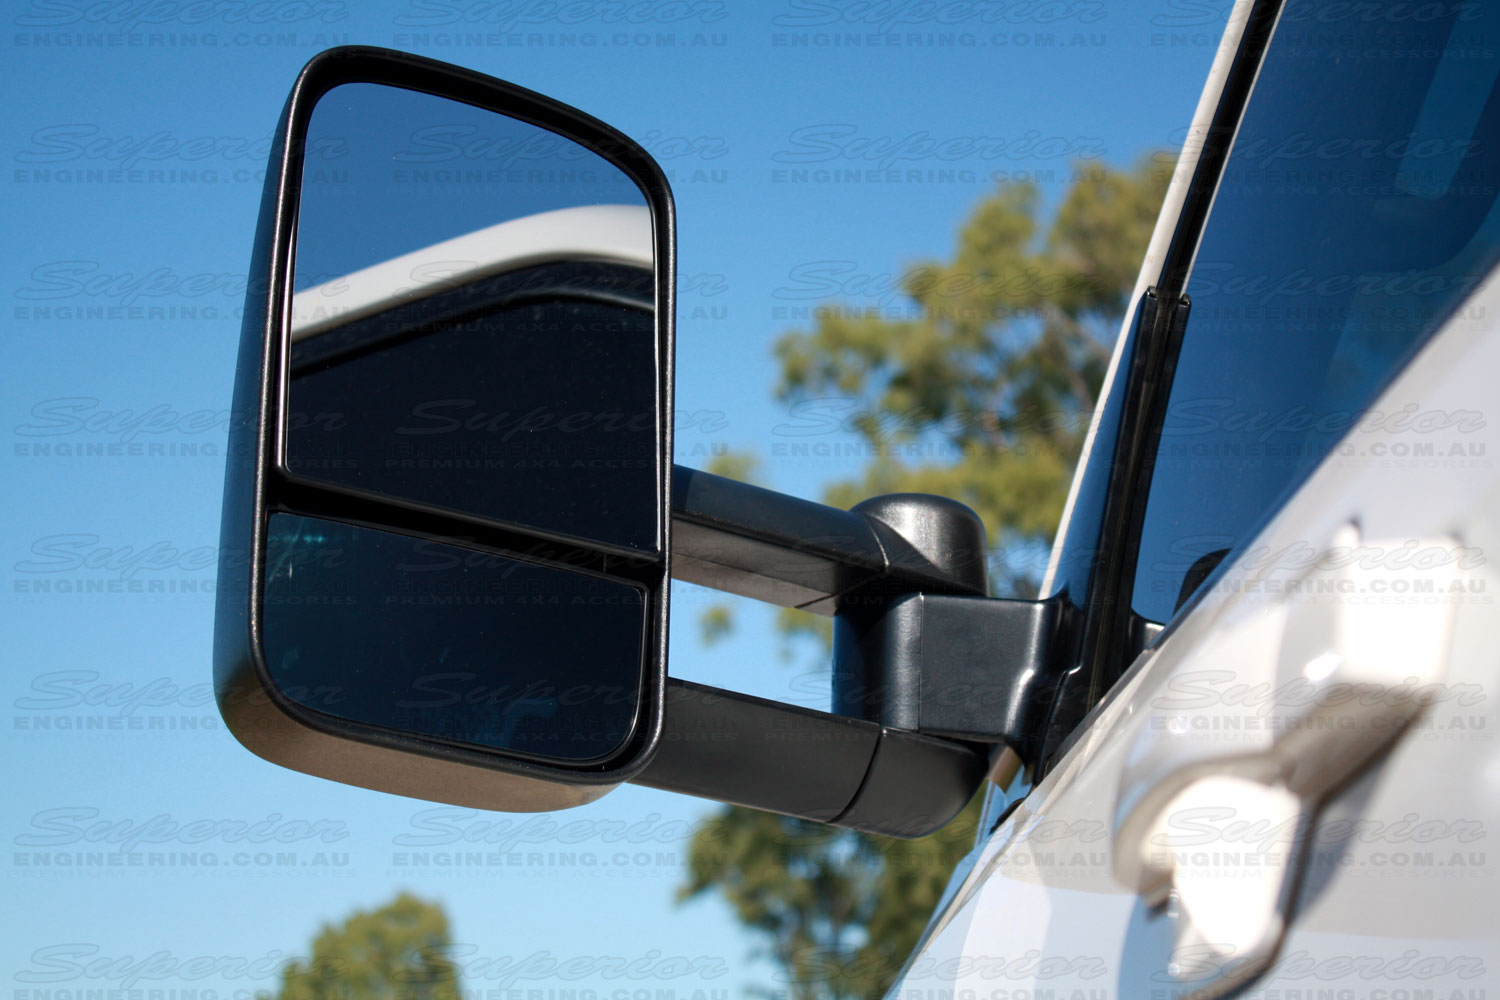 Right top view of mirror side of a Clearview Towing Mirror fitted to a late model Pajero